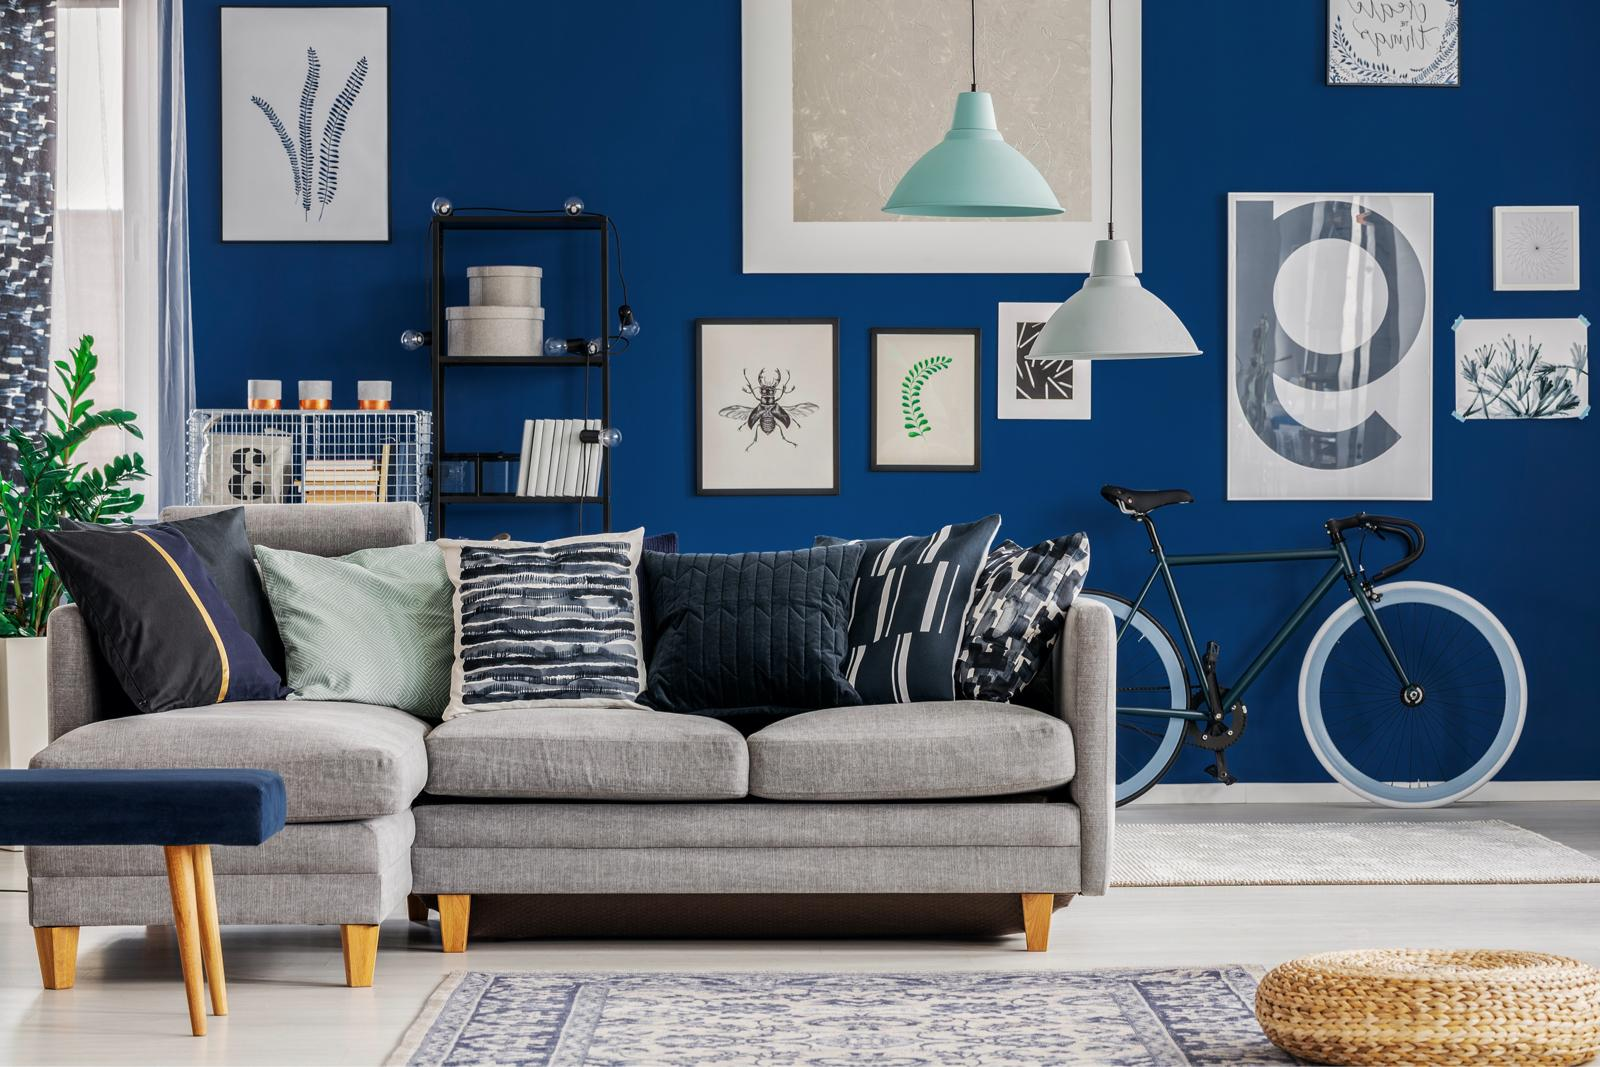 Maximalism Style And Why We Love It 5, Paneling Factory Of Virginia